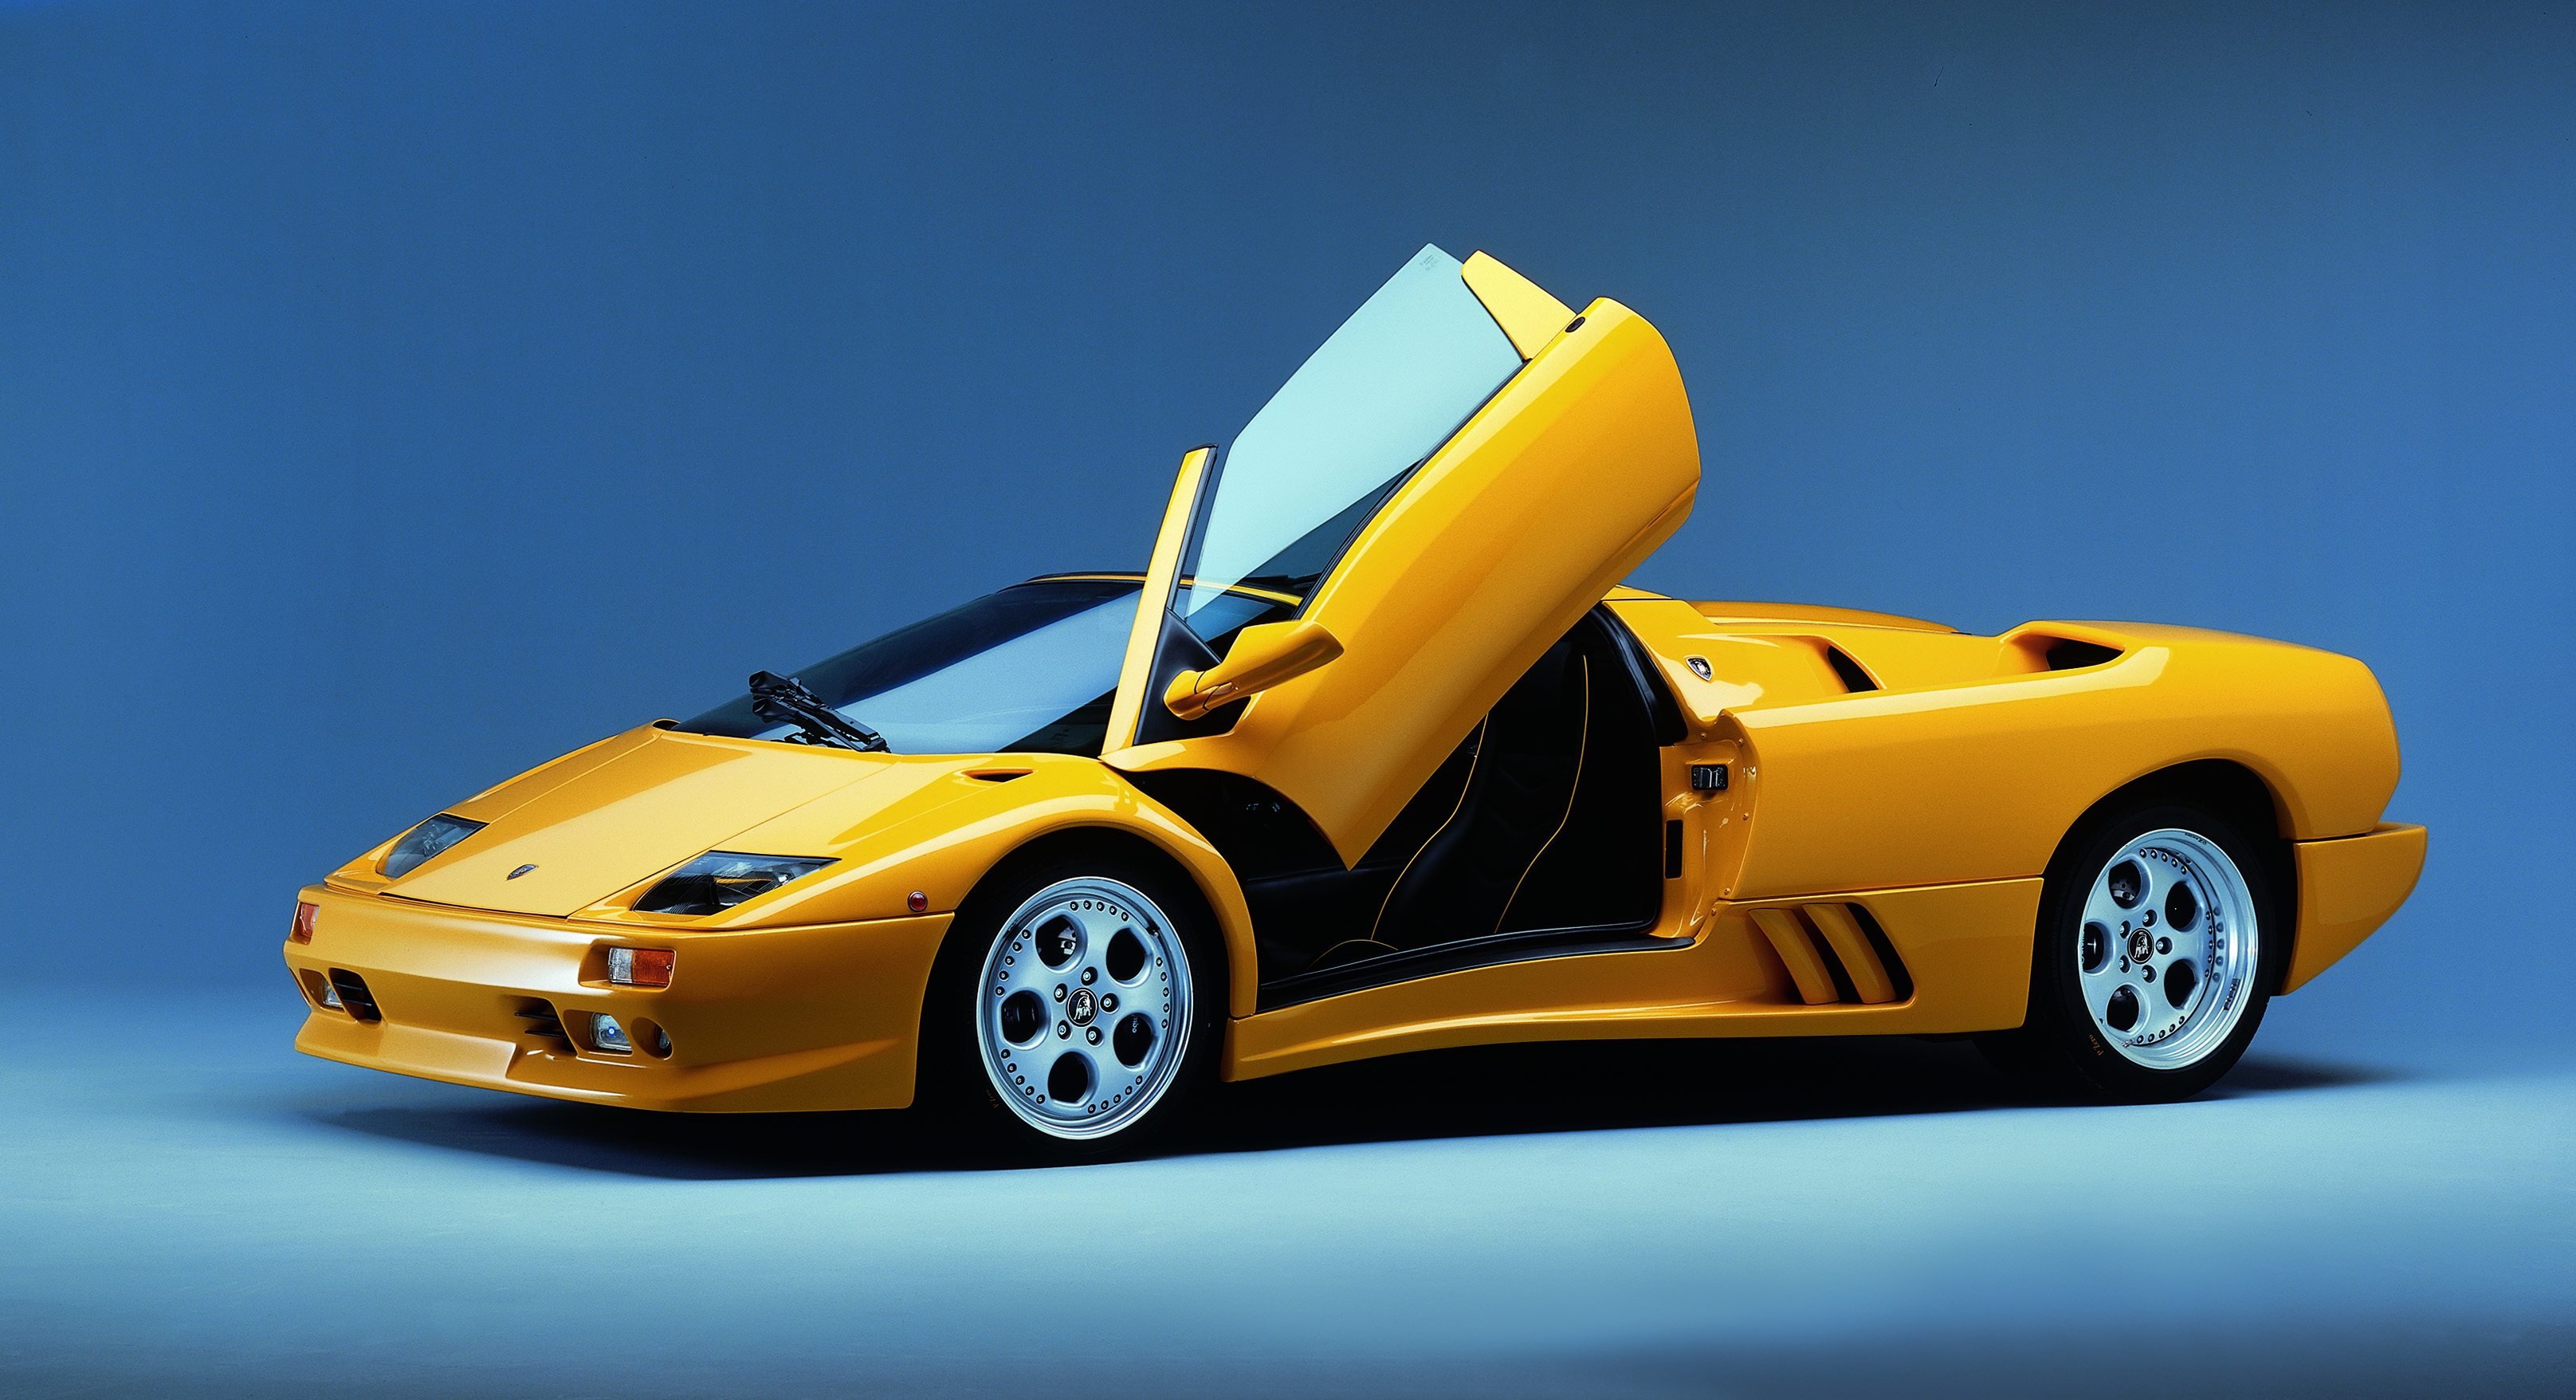 The Lamborghini Diablo became an icon of the 1990s